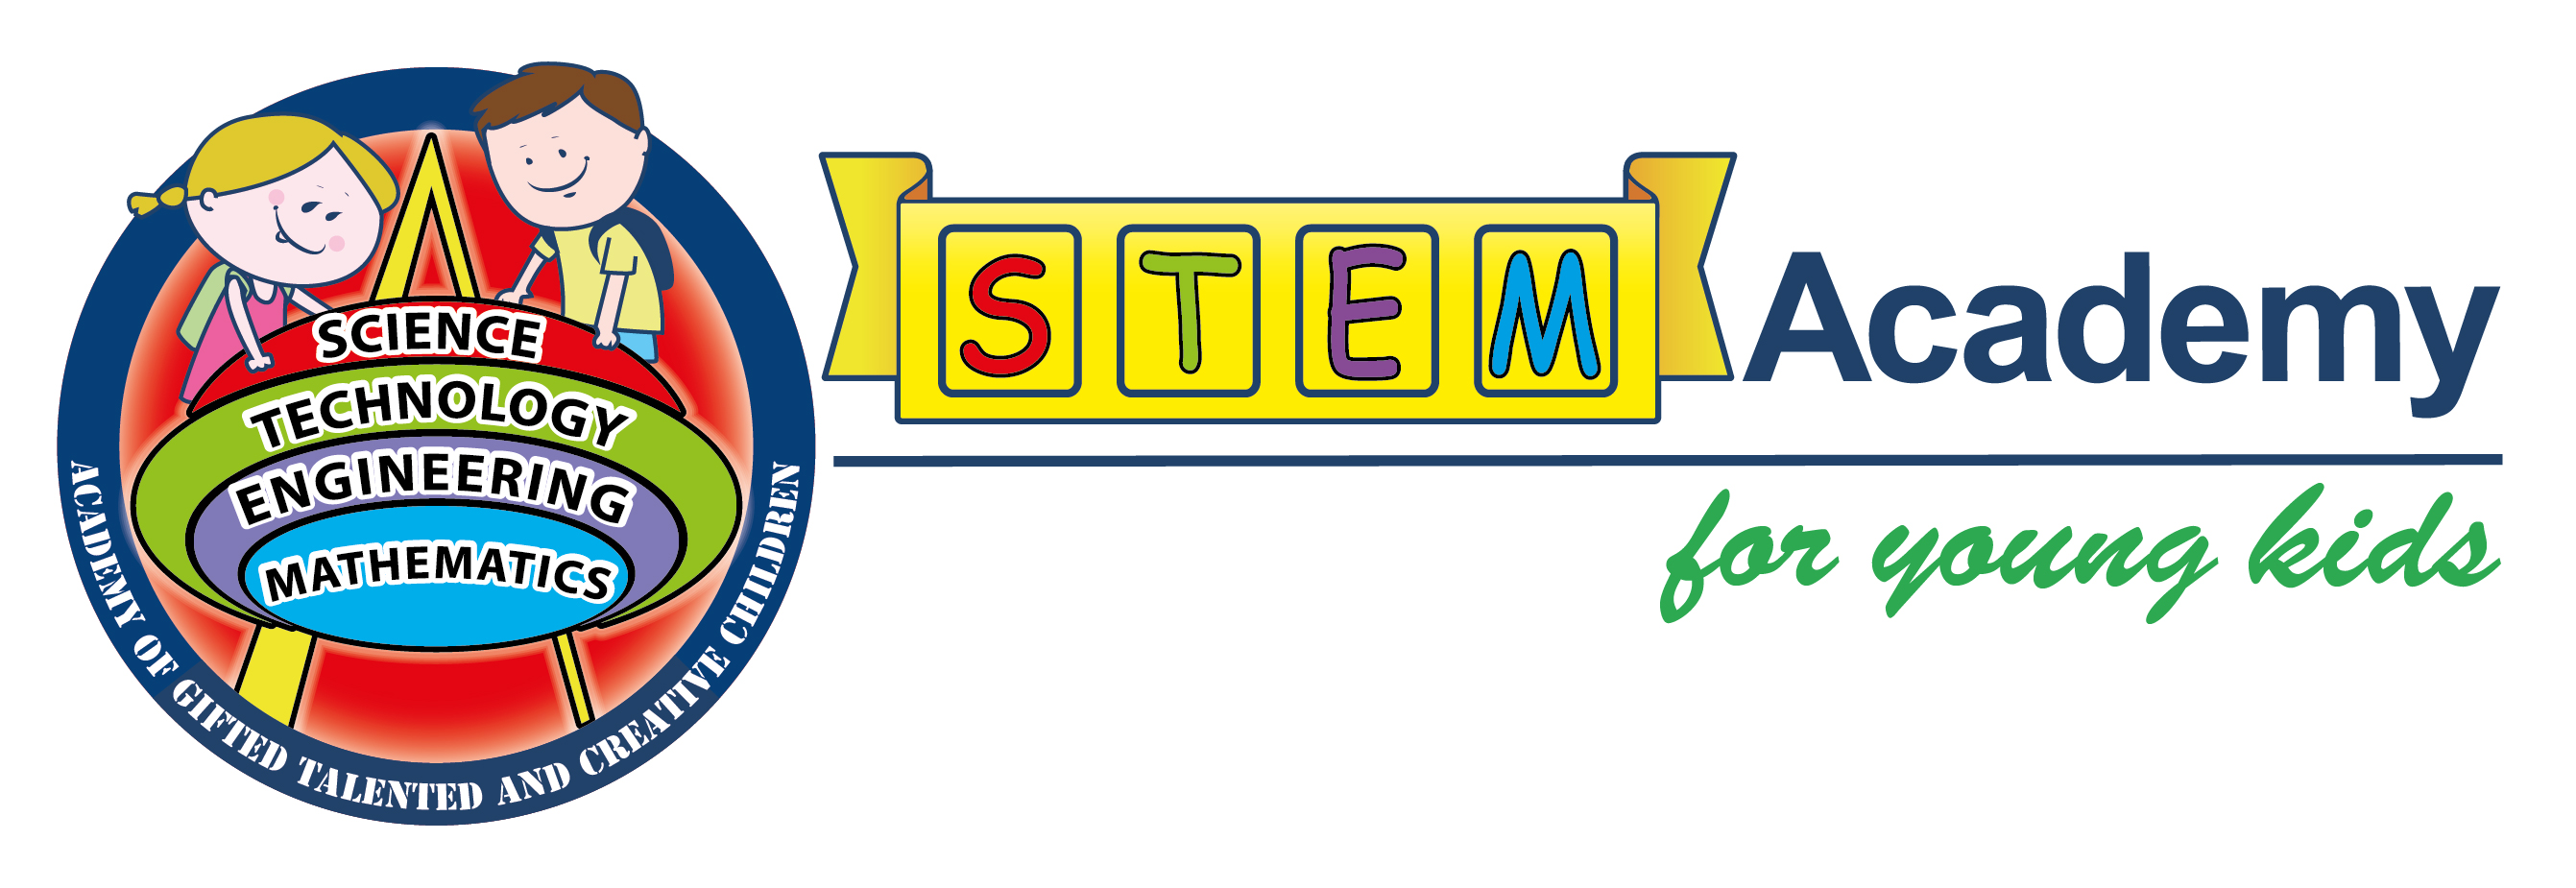 STEM ACADEMY FOR YOUNG KIDS